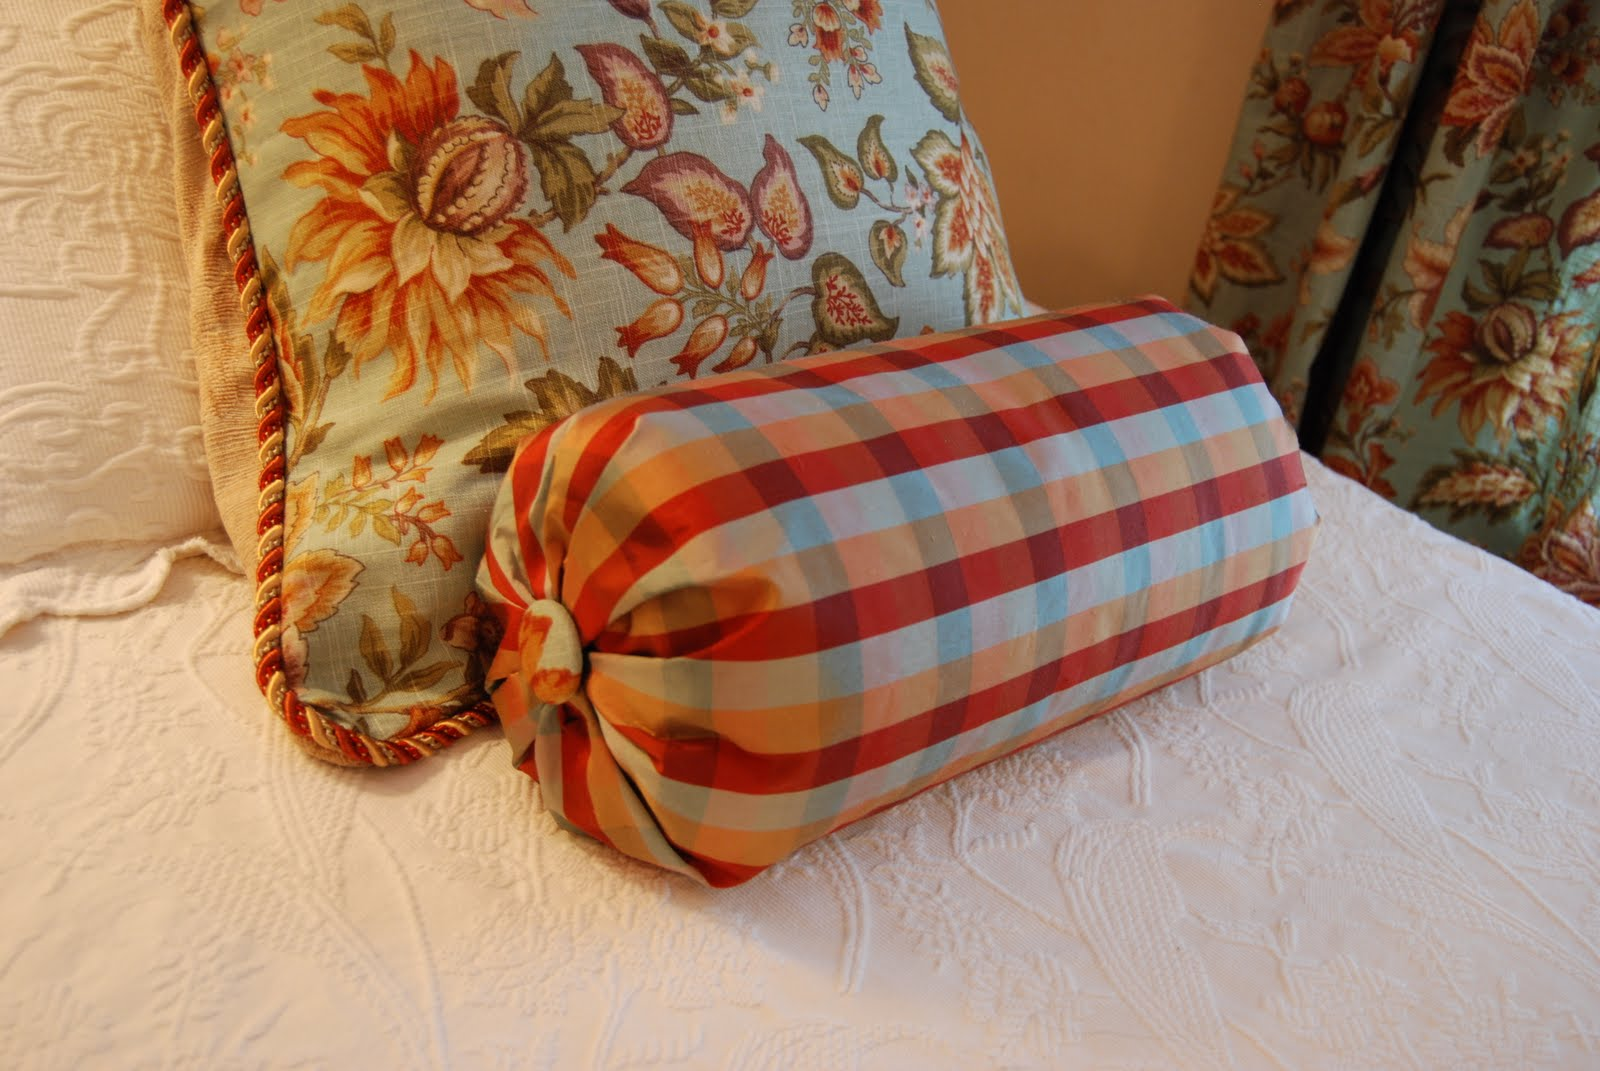 Imparting grace no sew bolster pillow tutorial Sew bolster pillow cover